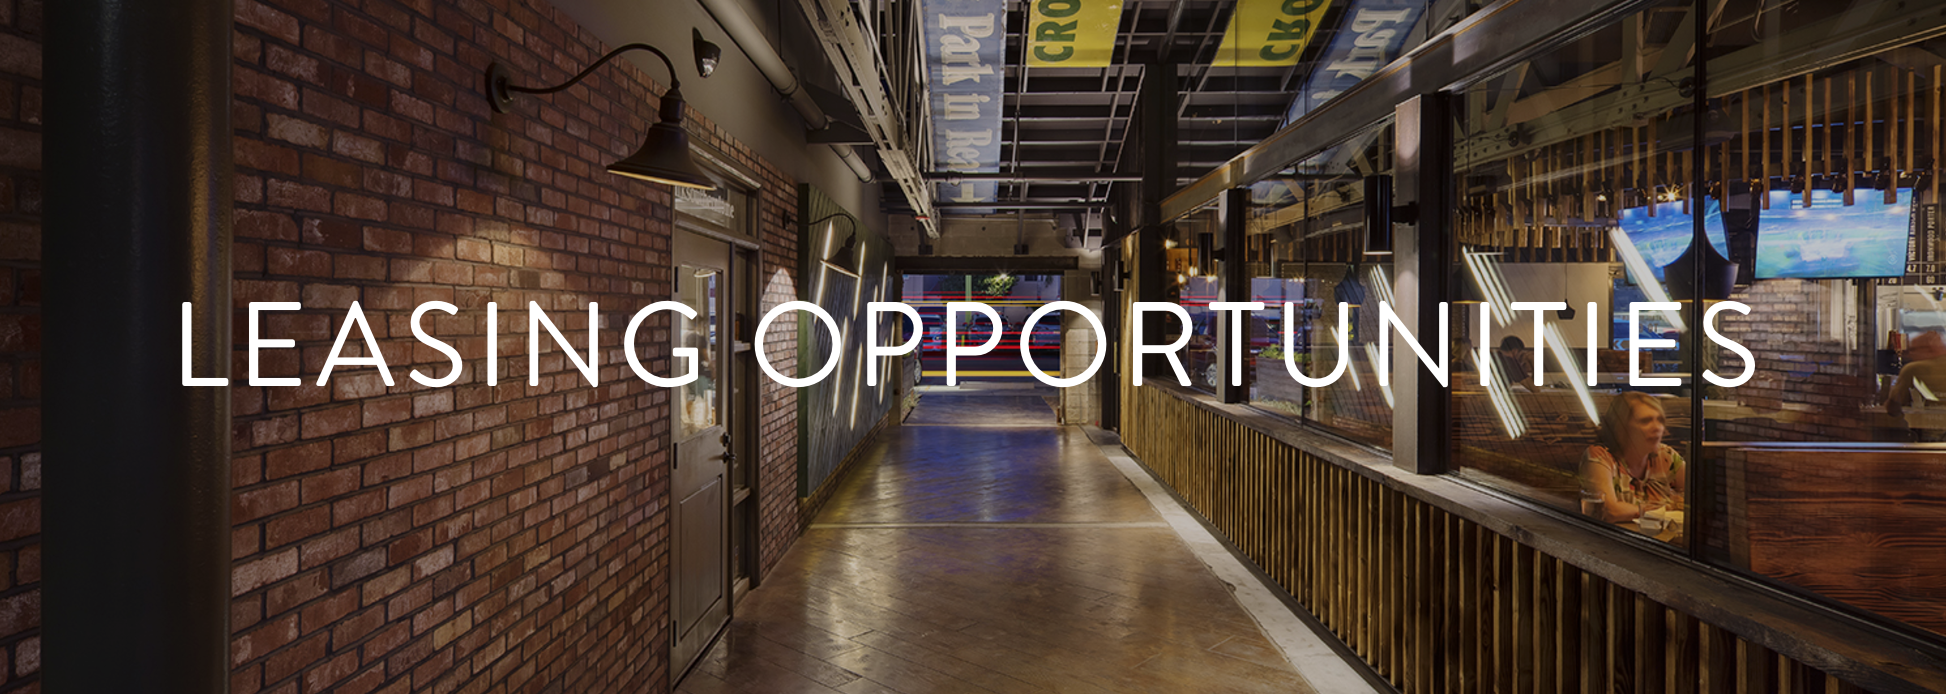 Check out our leasing opportunities